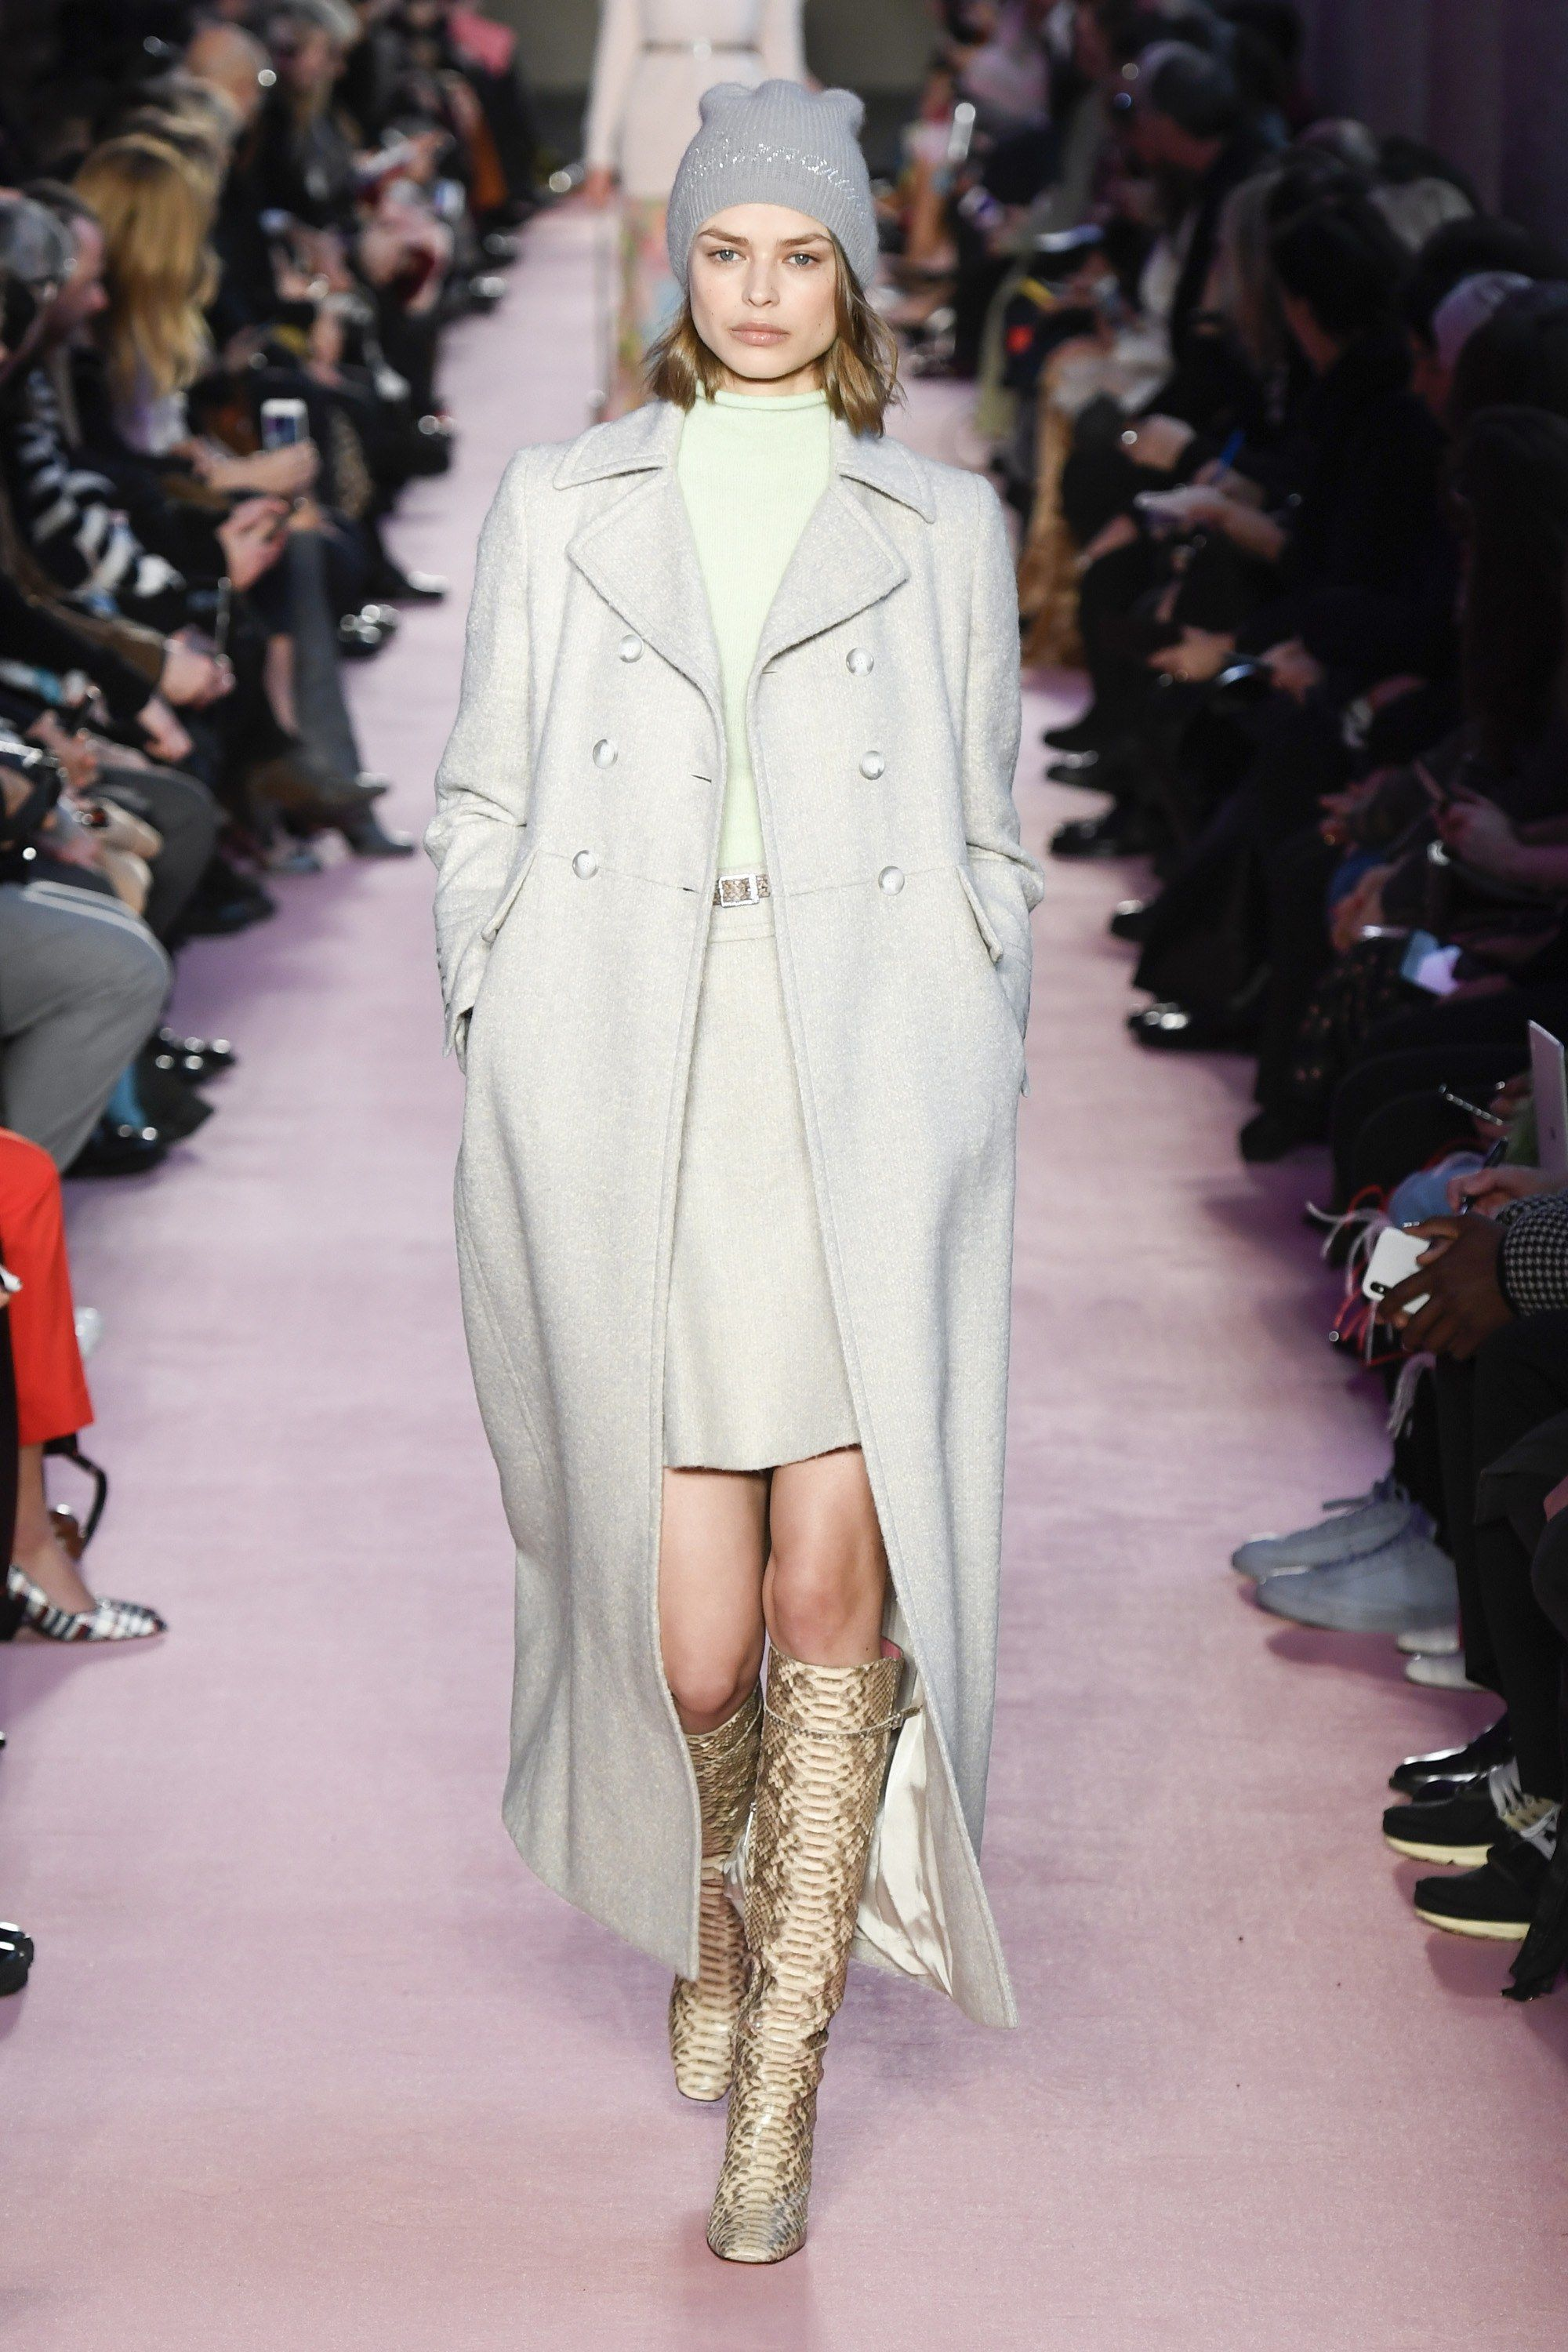 https://www.vogue.com/fashion-shows/fall-2018-ready-to-wear/blumarine/slideshow/collection#7